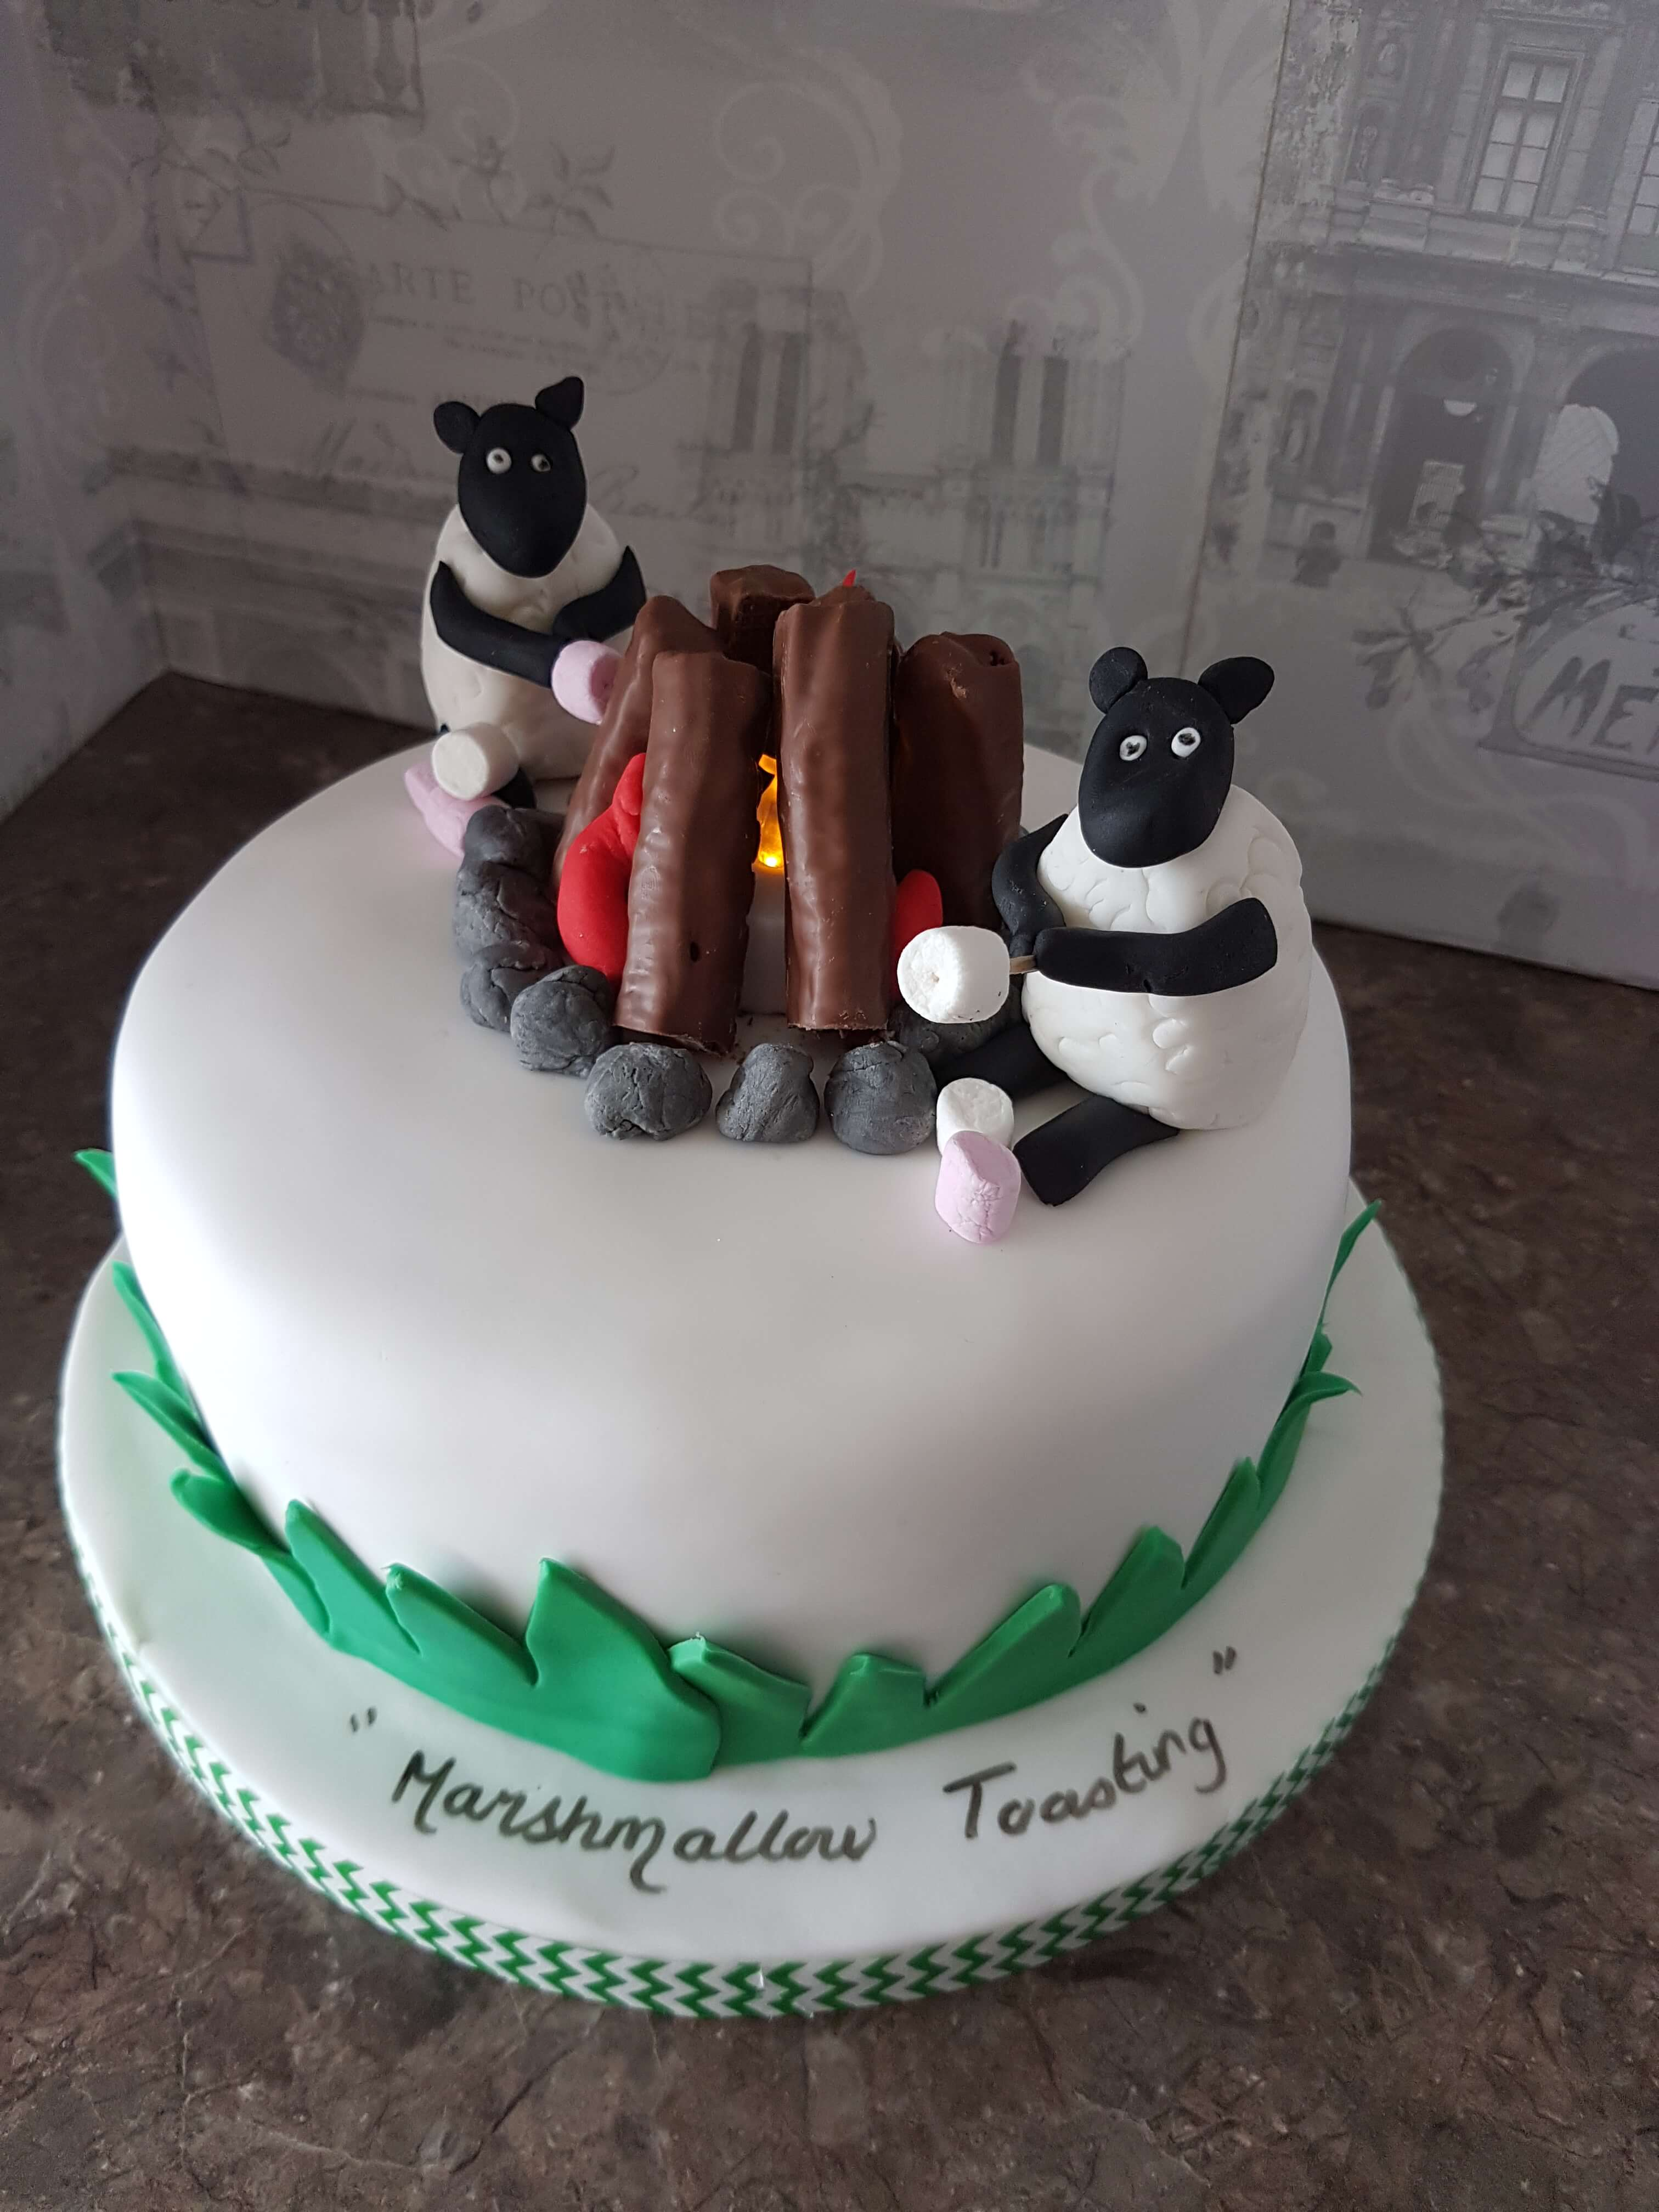 Ewe should try these Marshmallows Cake!